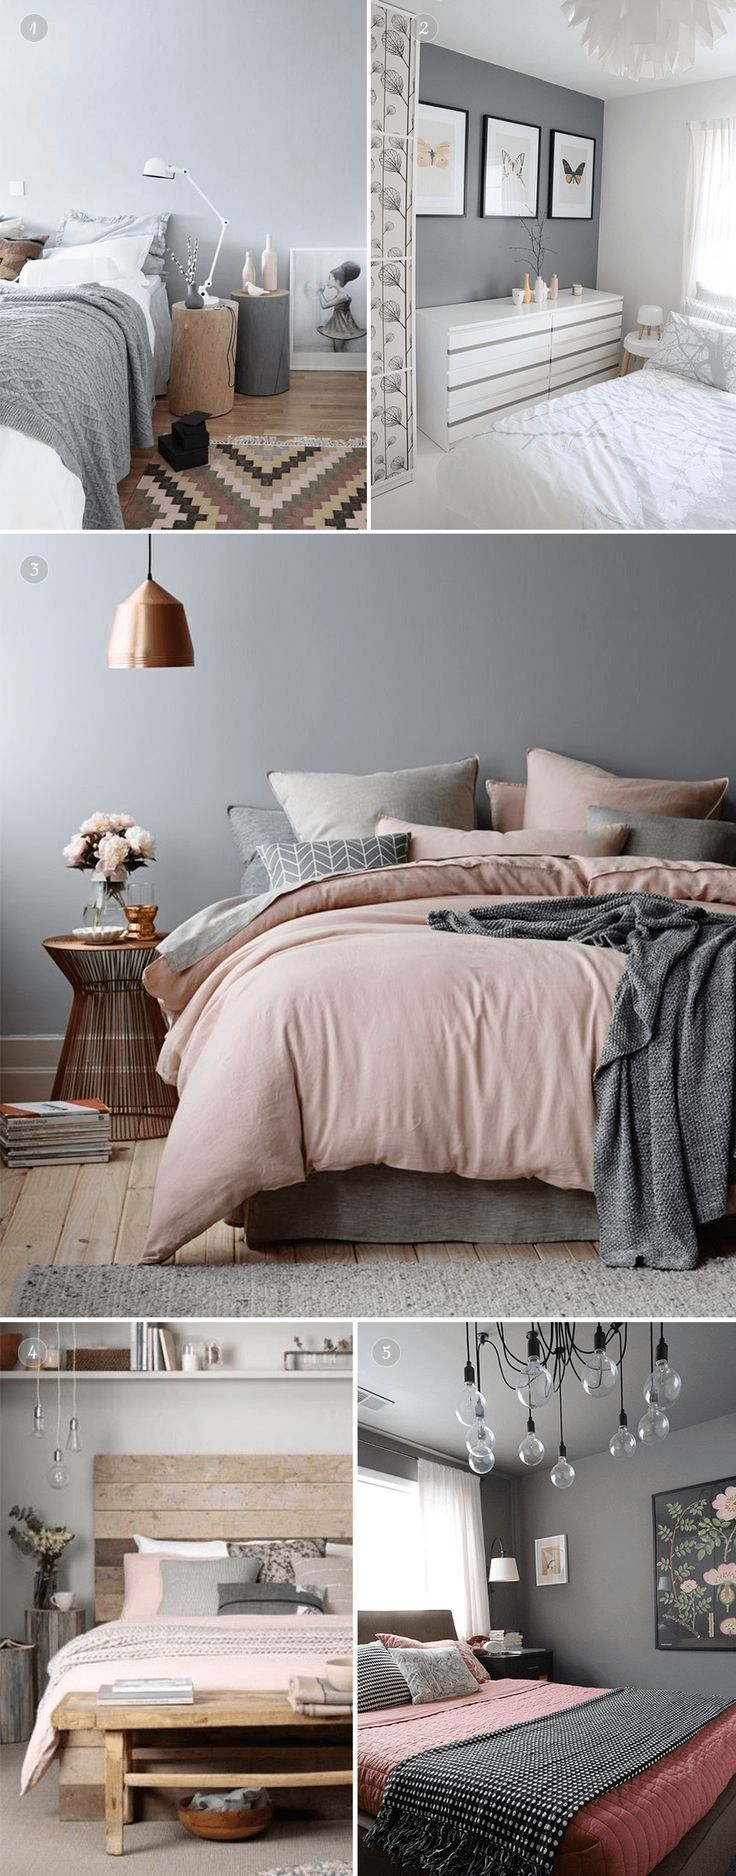 Home Decor ideas | light pink and gray color scheme home decor